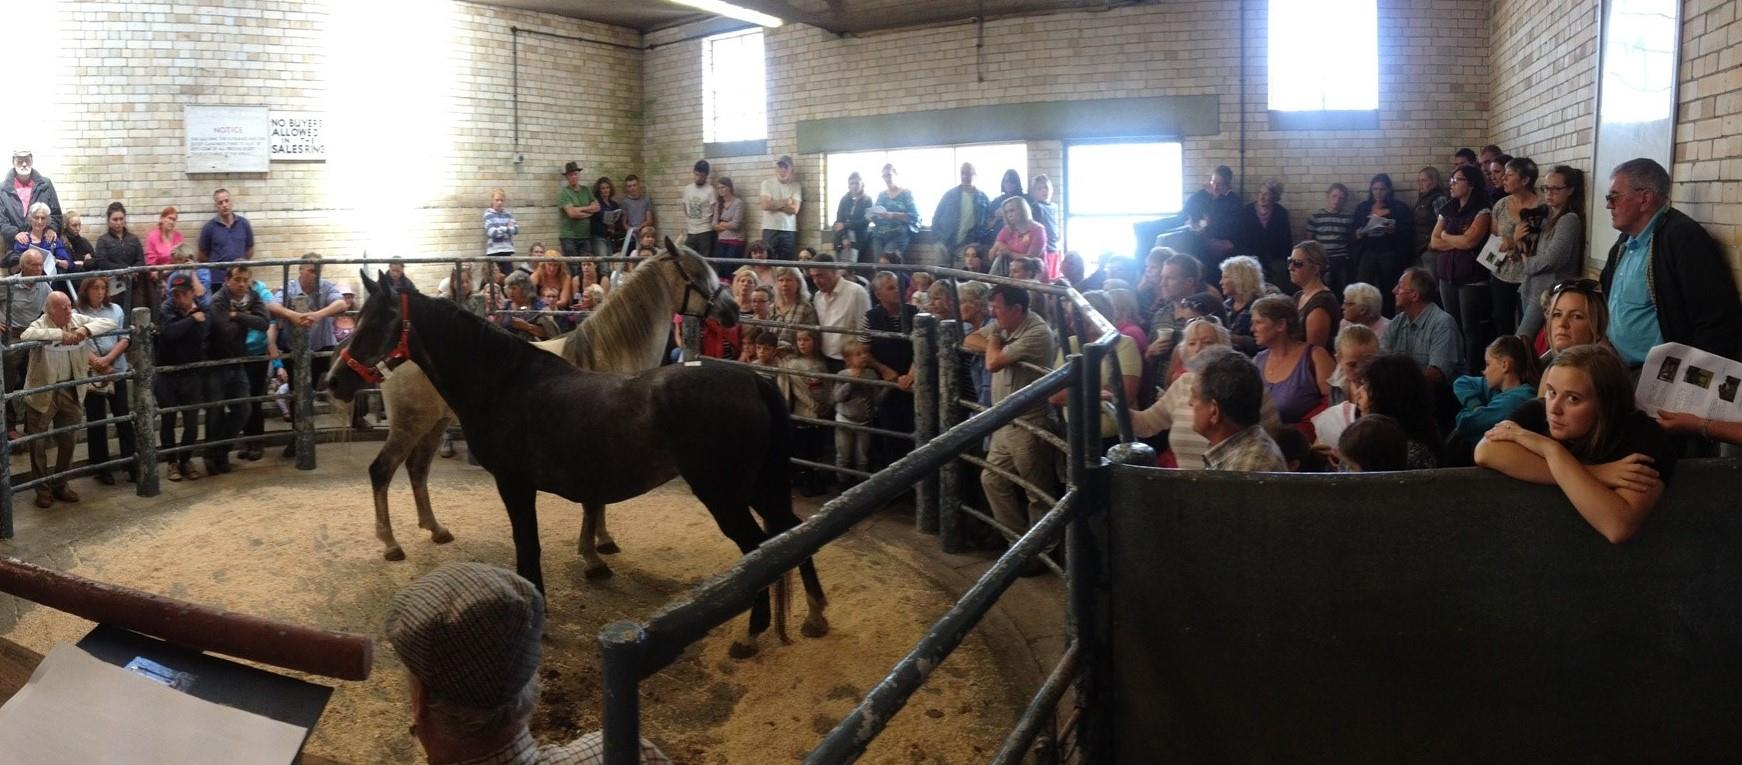 South West Horse & Tack Sale - Wednesday 23rd October 2019